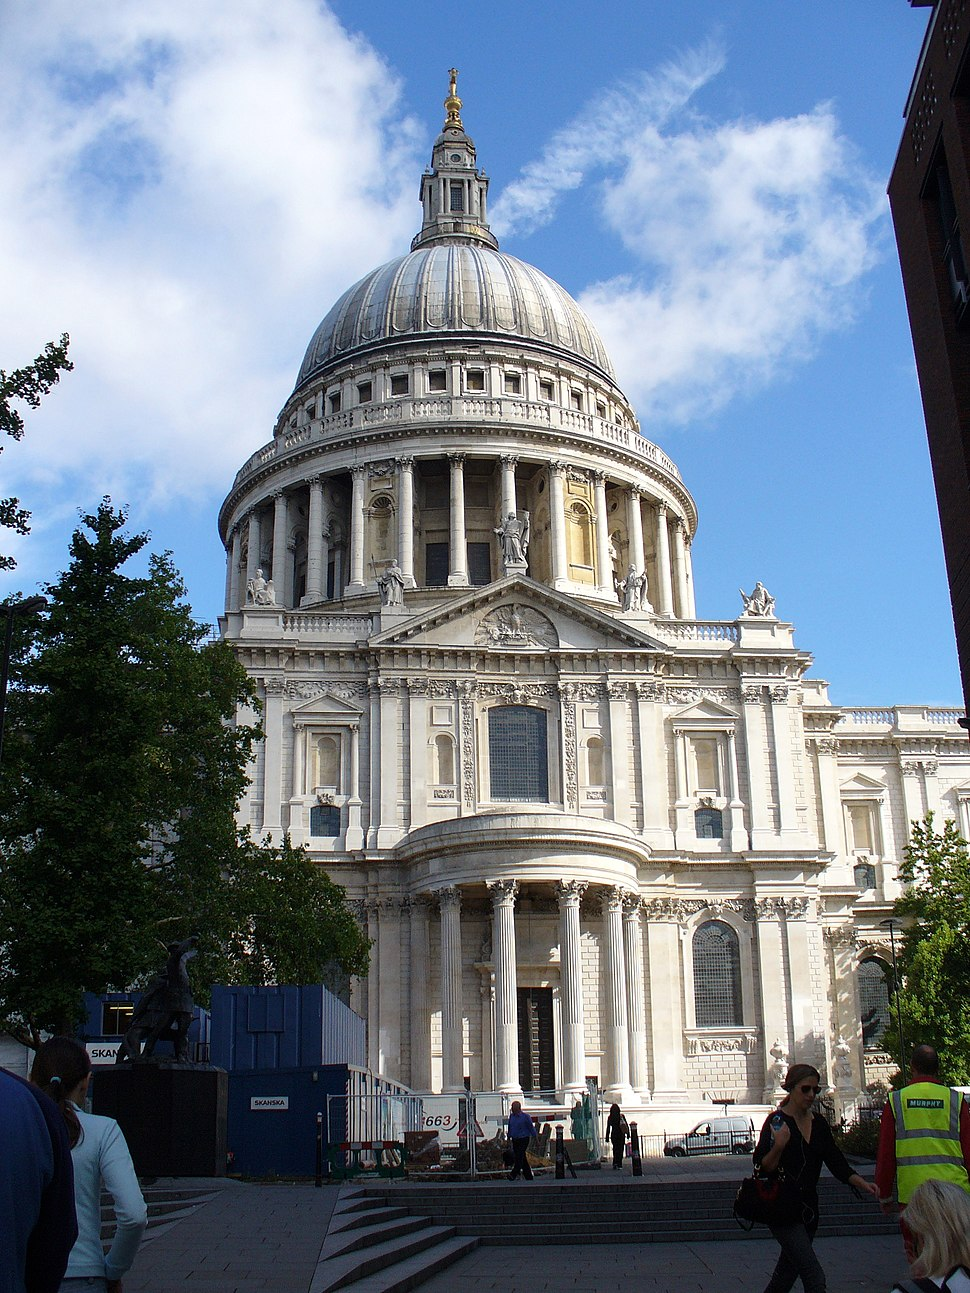 St. Pauls Cathedral with dome